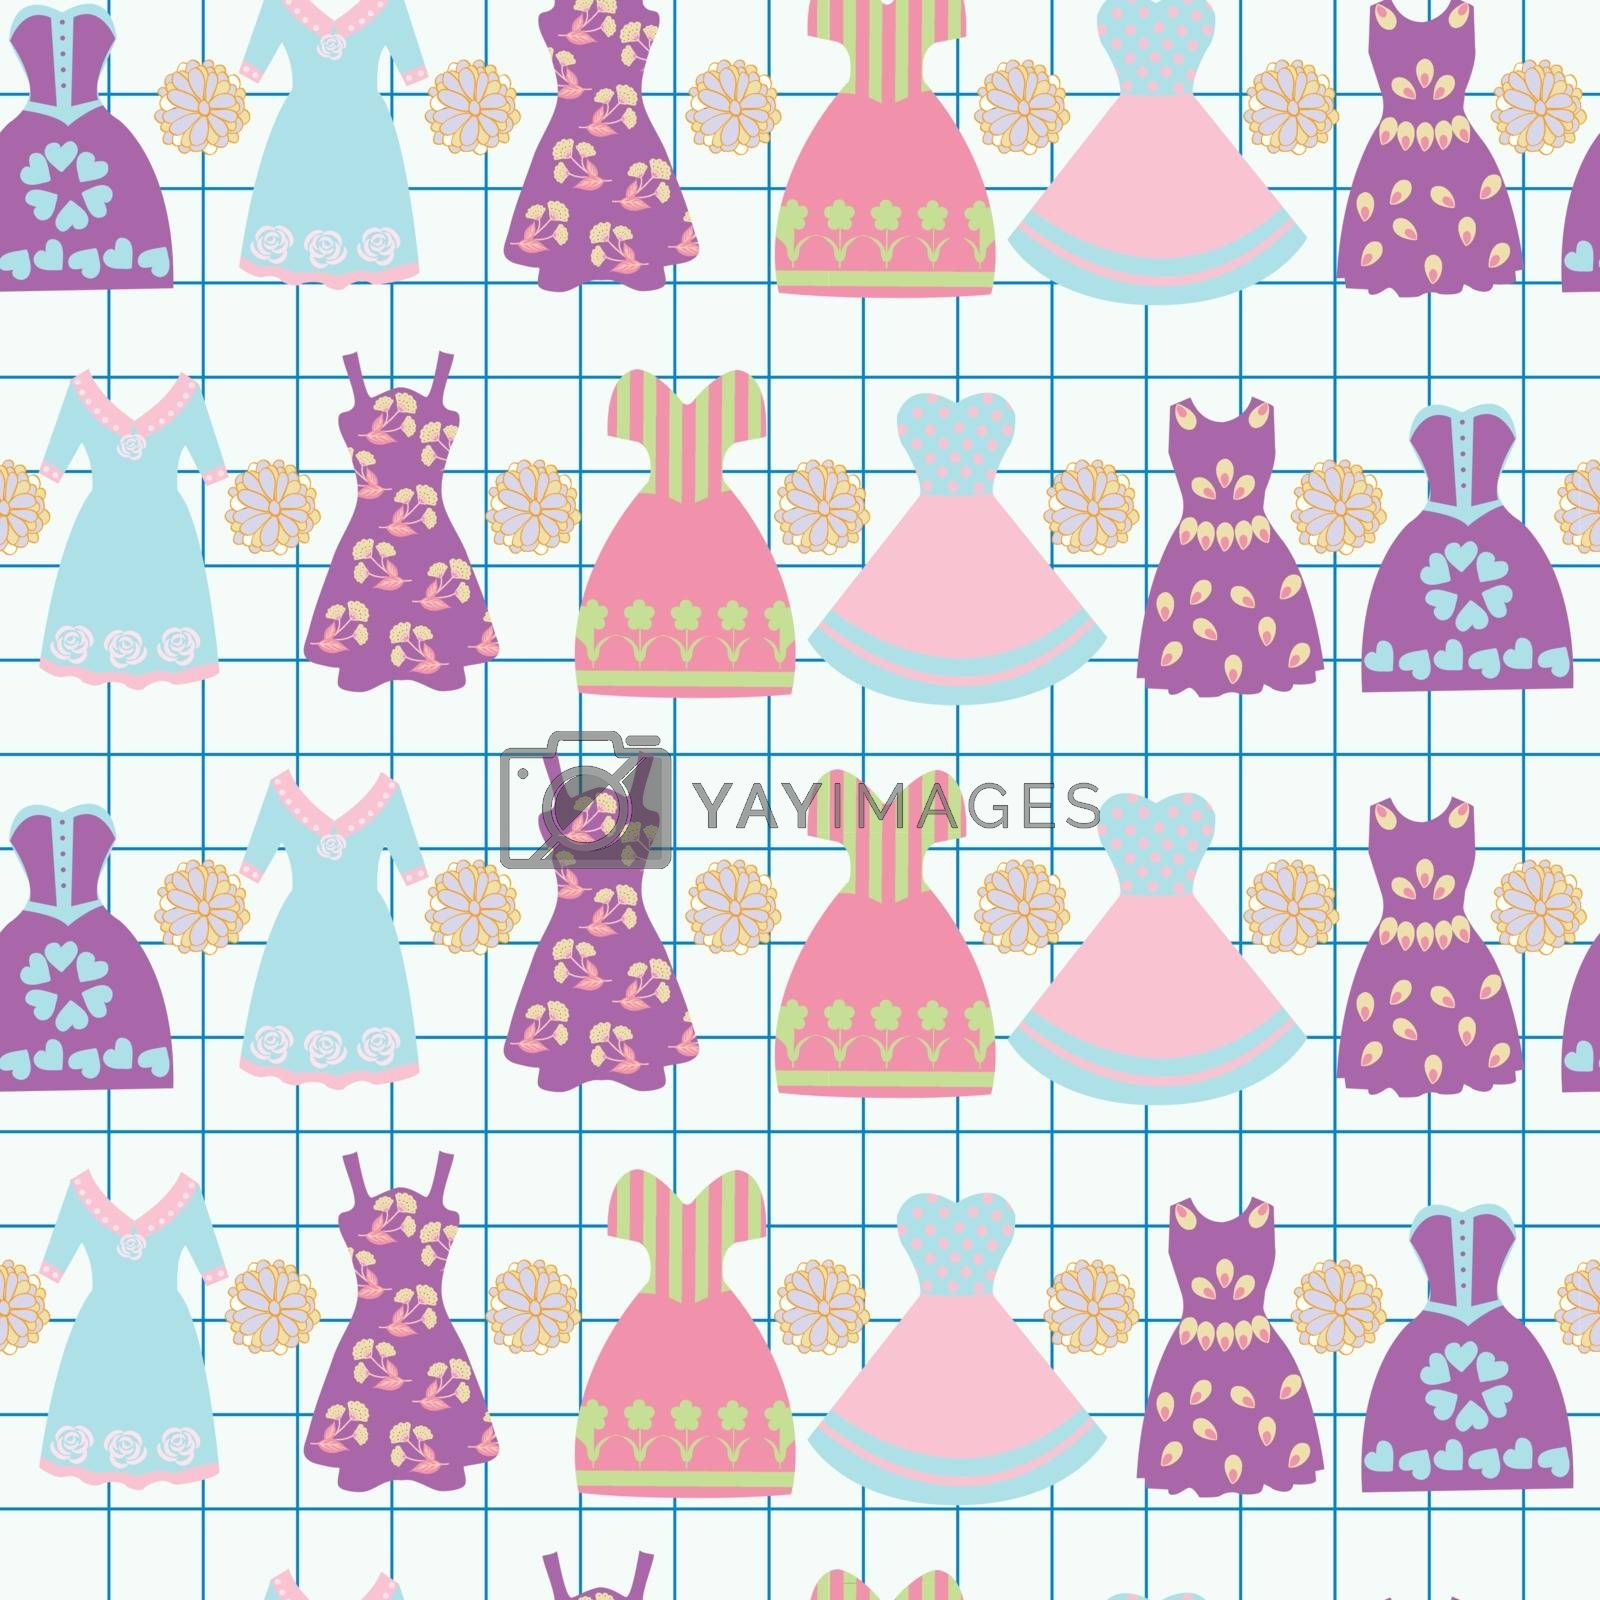 Vector illustration background  with various women's clothing fashion dresses. Graphic hand-drawn sketches cute of dresses seamless Pattern for decor, craft, paper